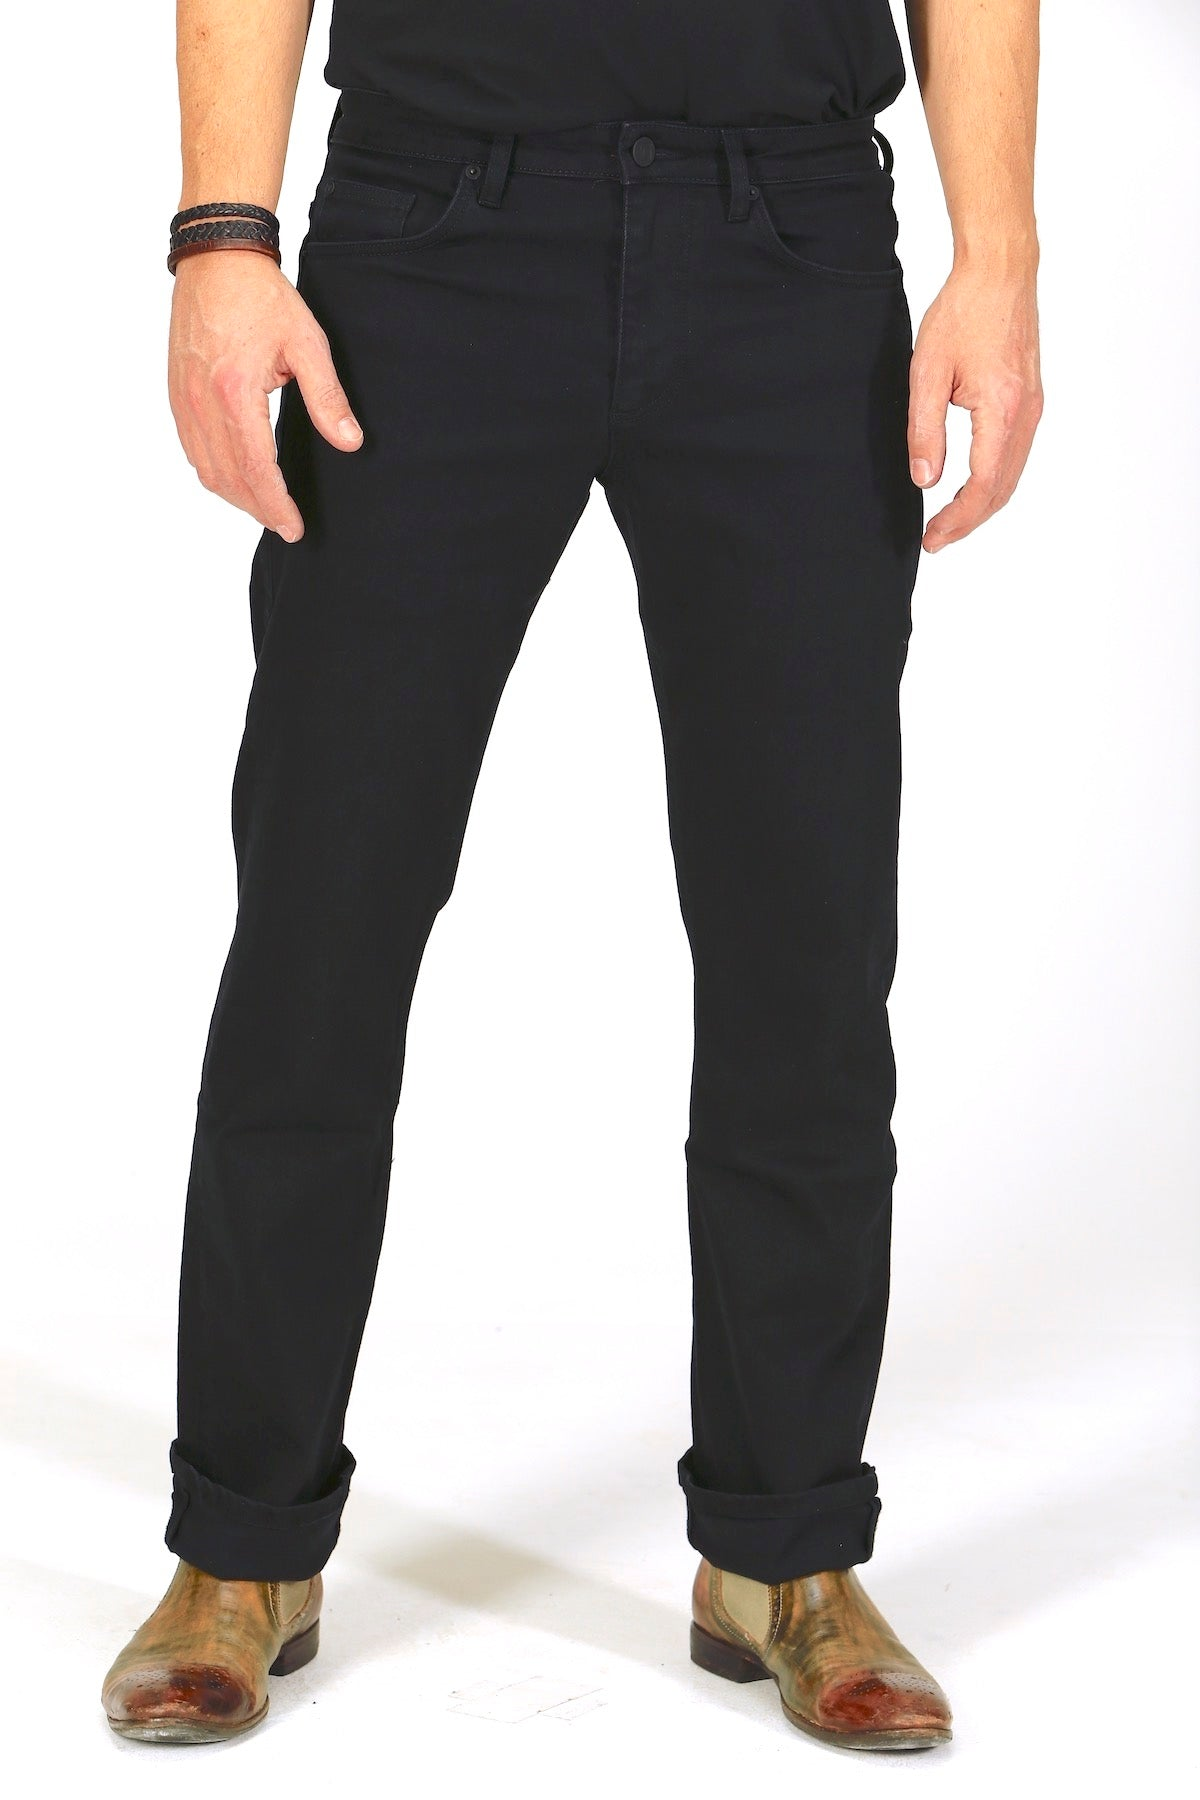 Straight Fit - Black Herren-Jeans